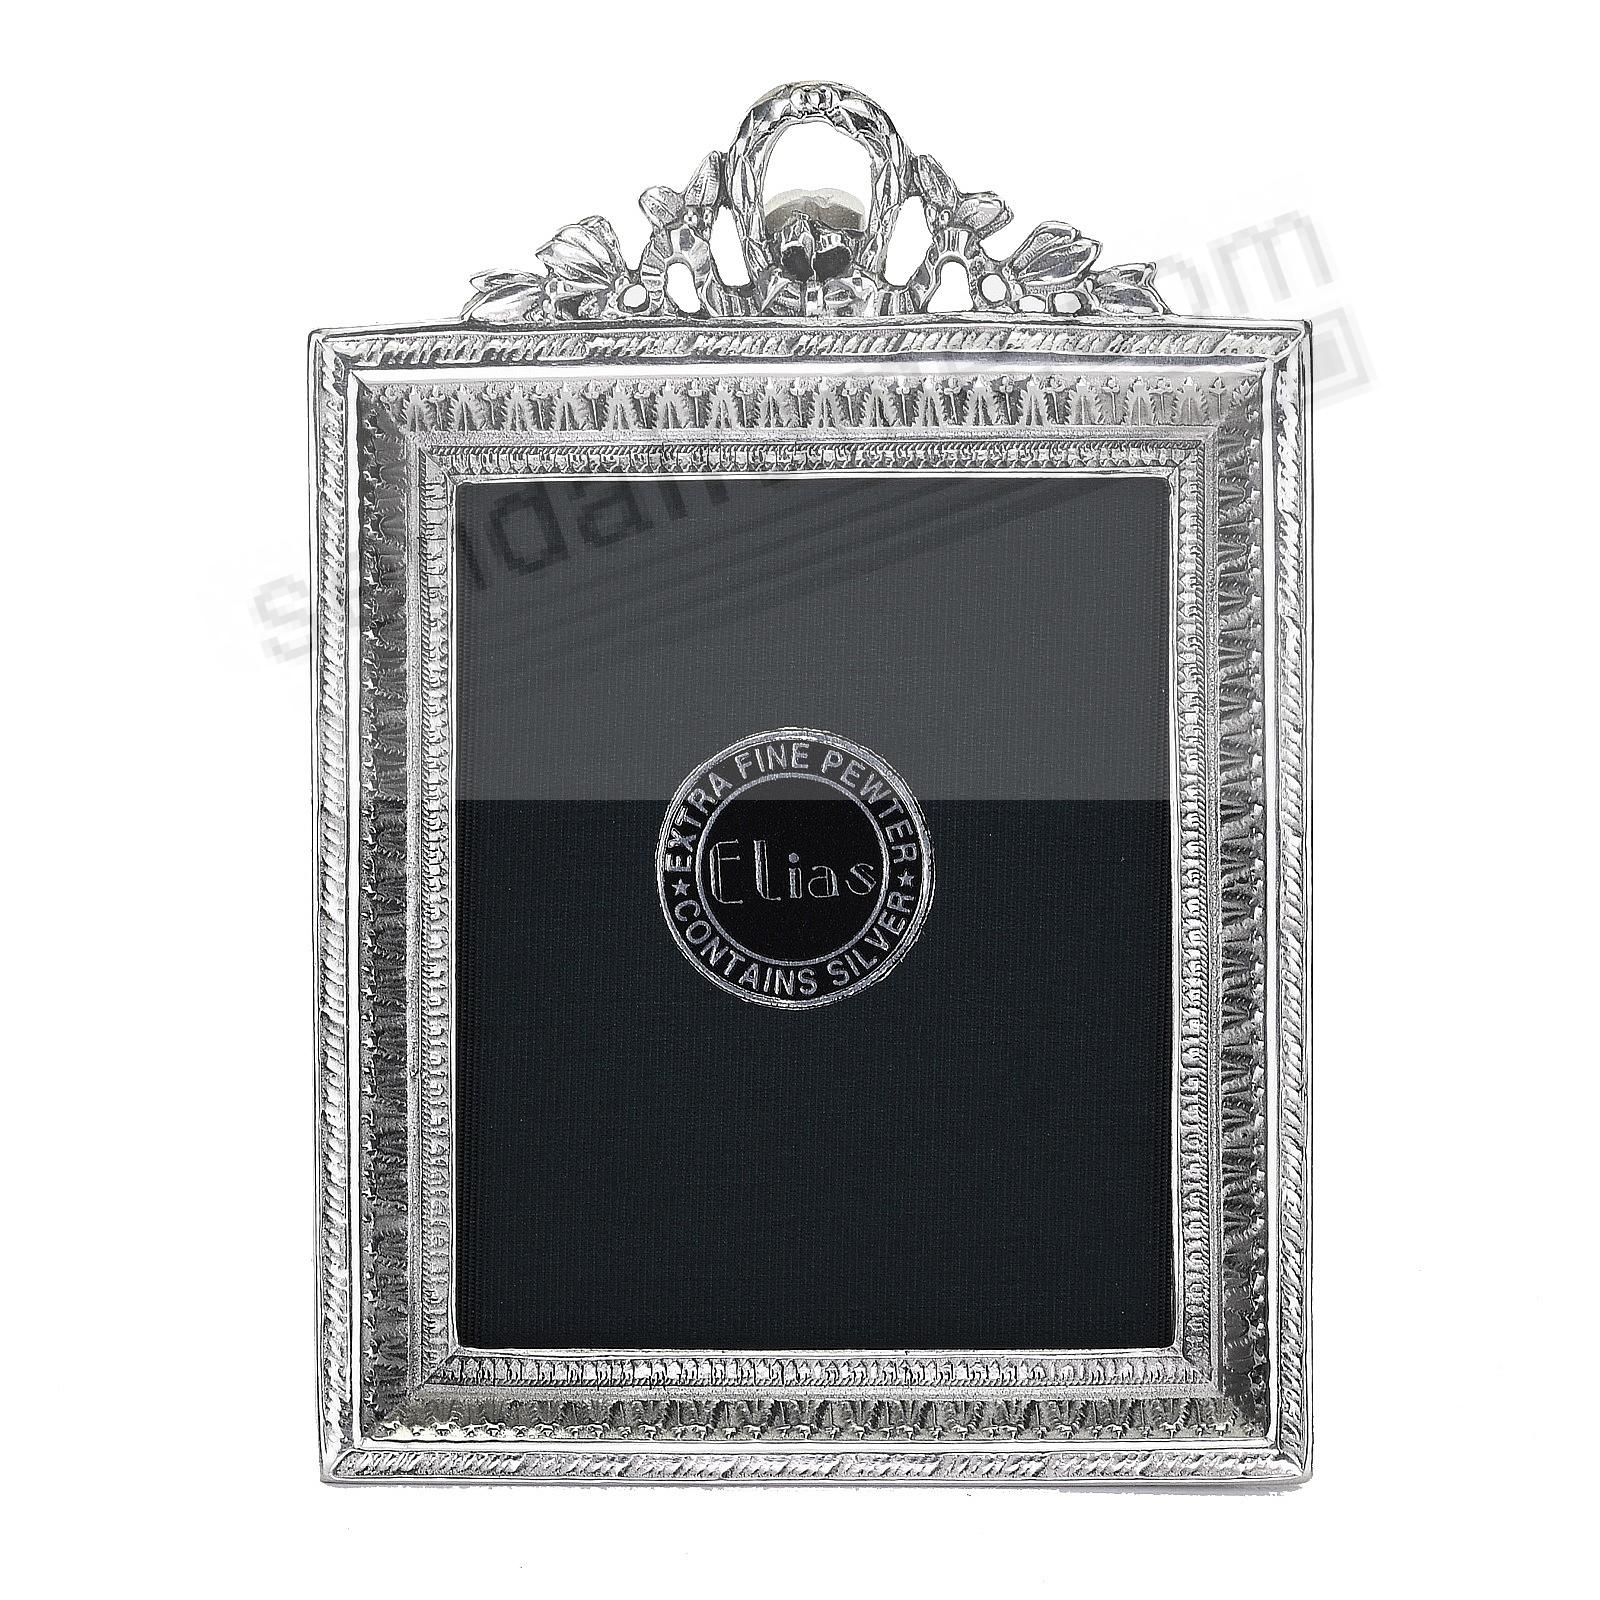 MINI PORTRAIT Fine Silvered Pewter 2x2½ Elias Artmetal®